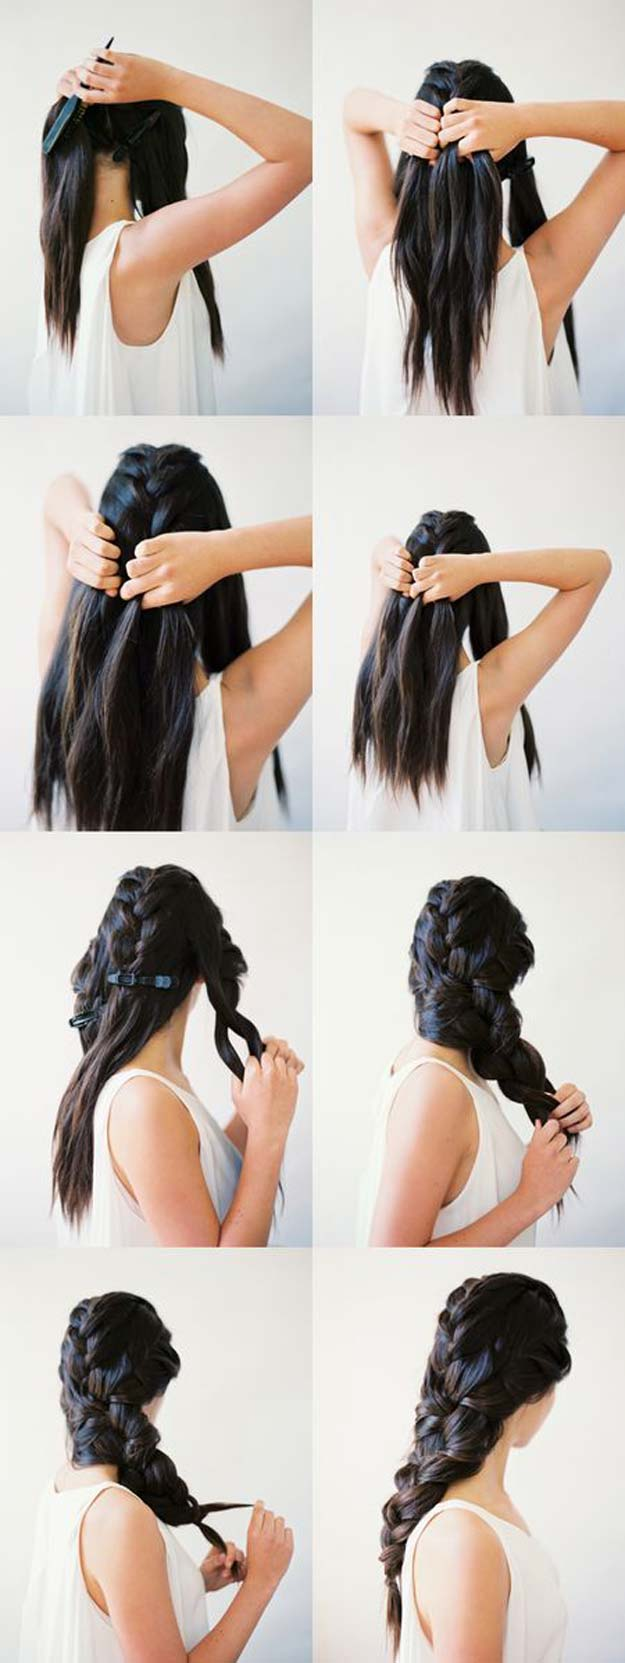 41 DIY Cool Easy Hairstyles That Real People Can Actually Do ...